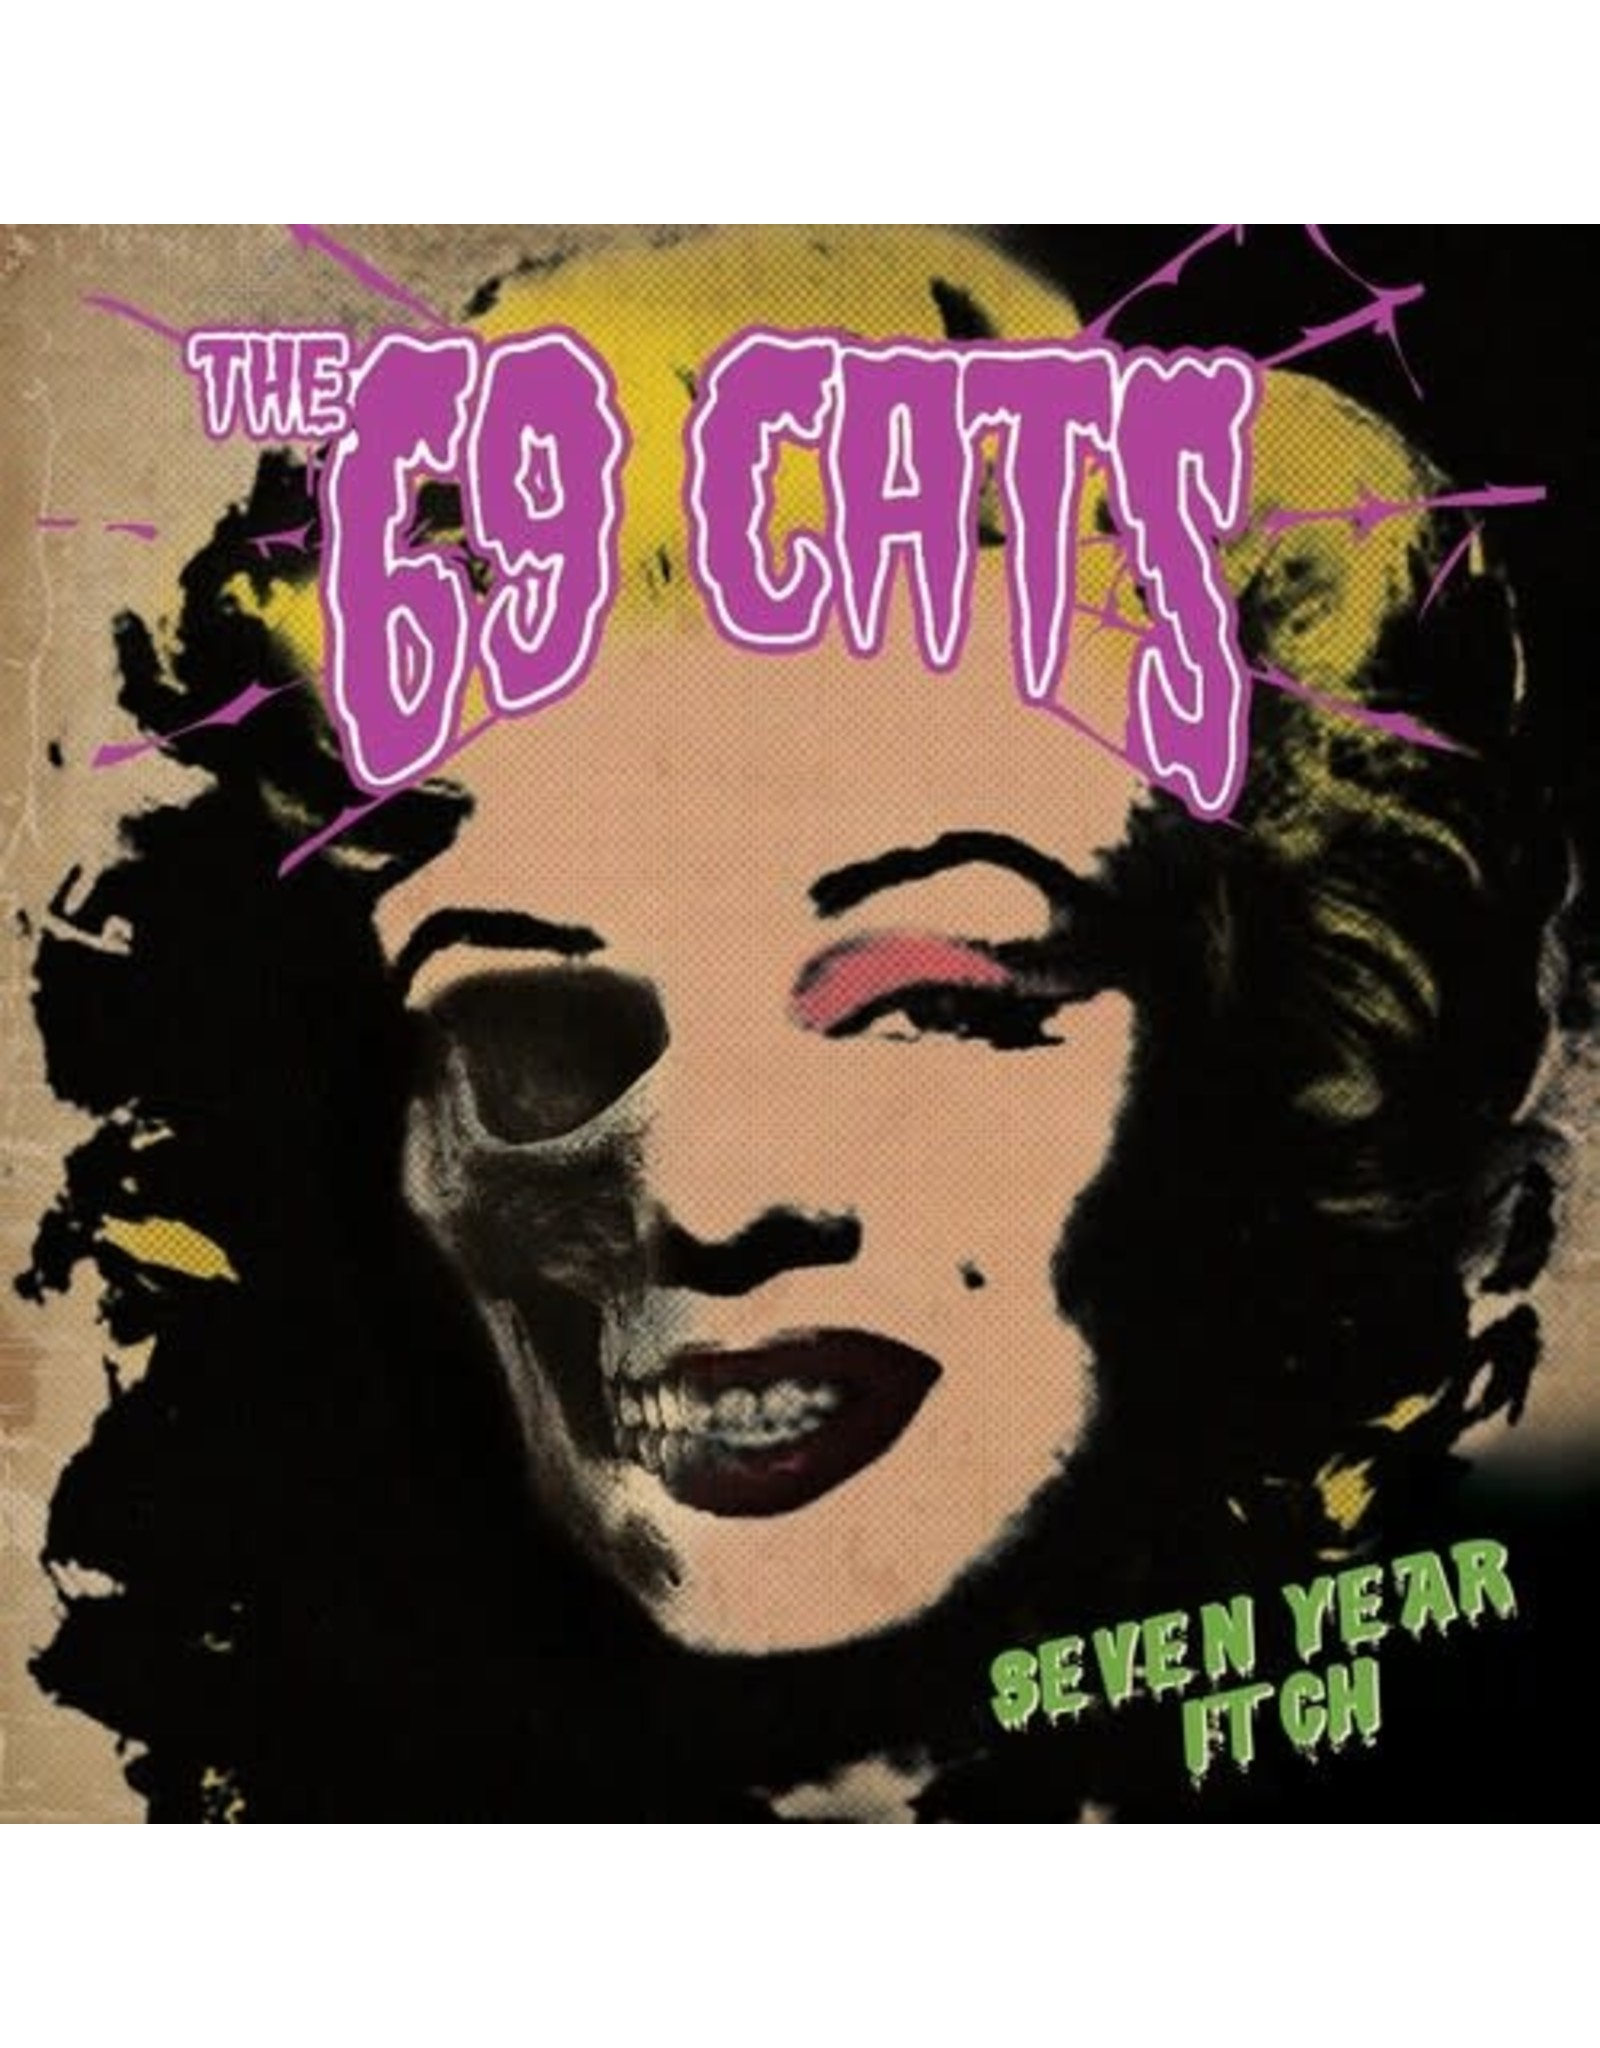 69 Cats / Seven Year Itch (Pink Vinyl)